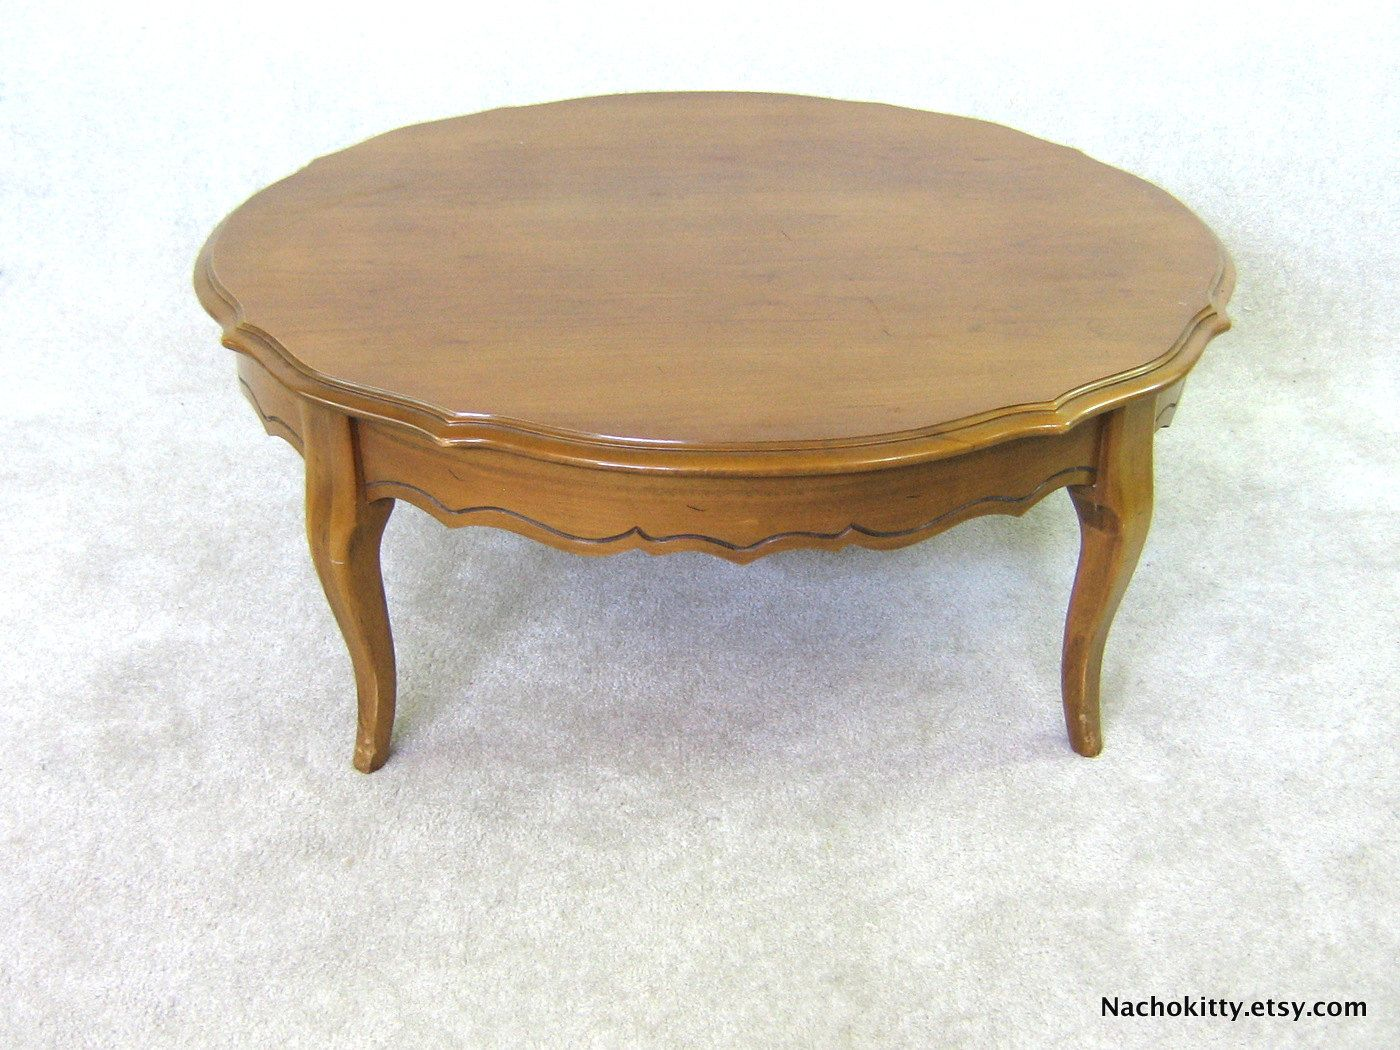 1960s Maple Coffee Table Early American Solid Wood Craftsmanship Via Etsy Furniture